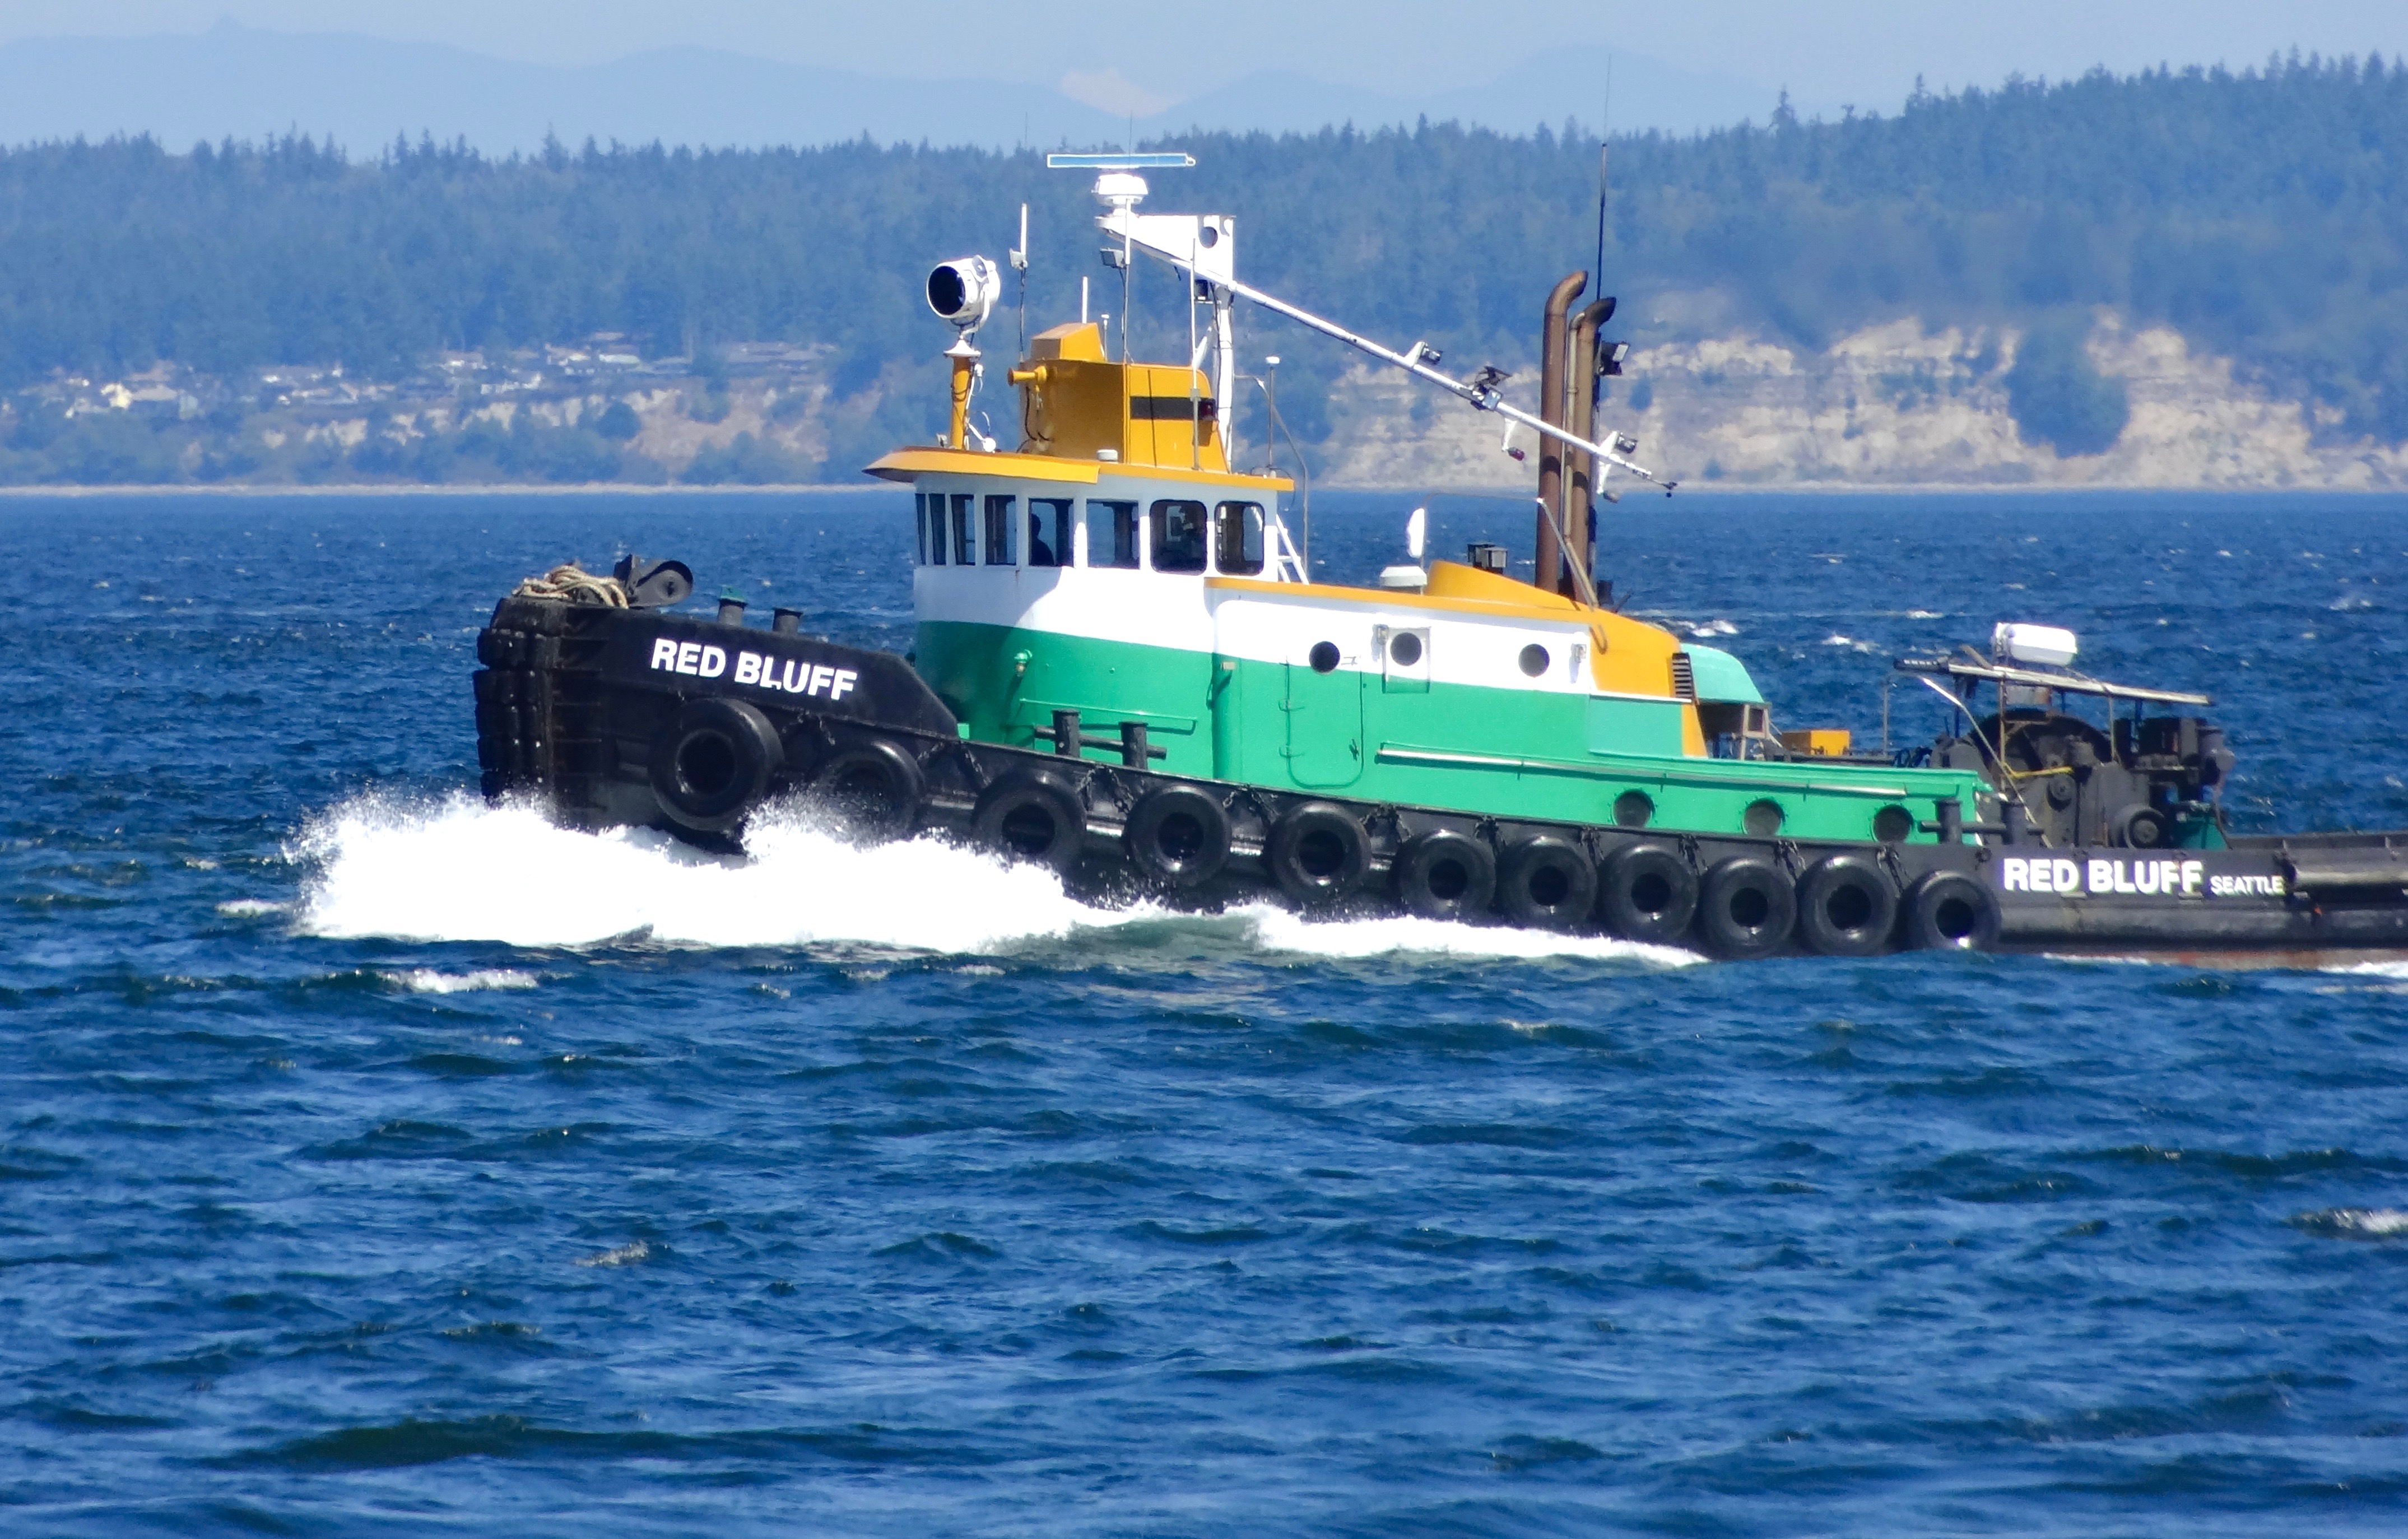 Red Bluff Tug Boat